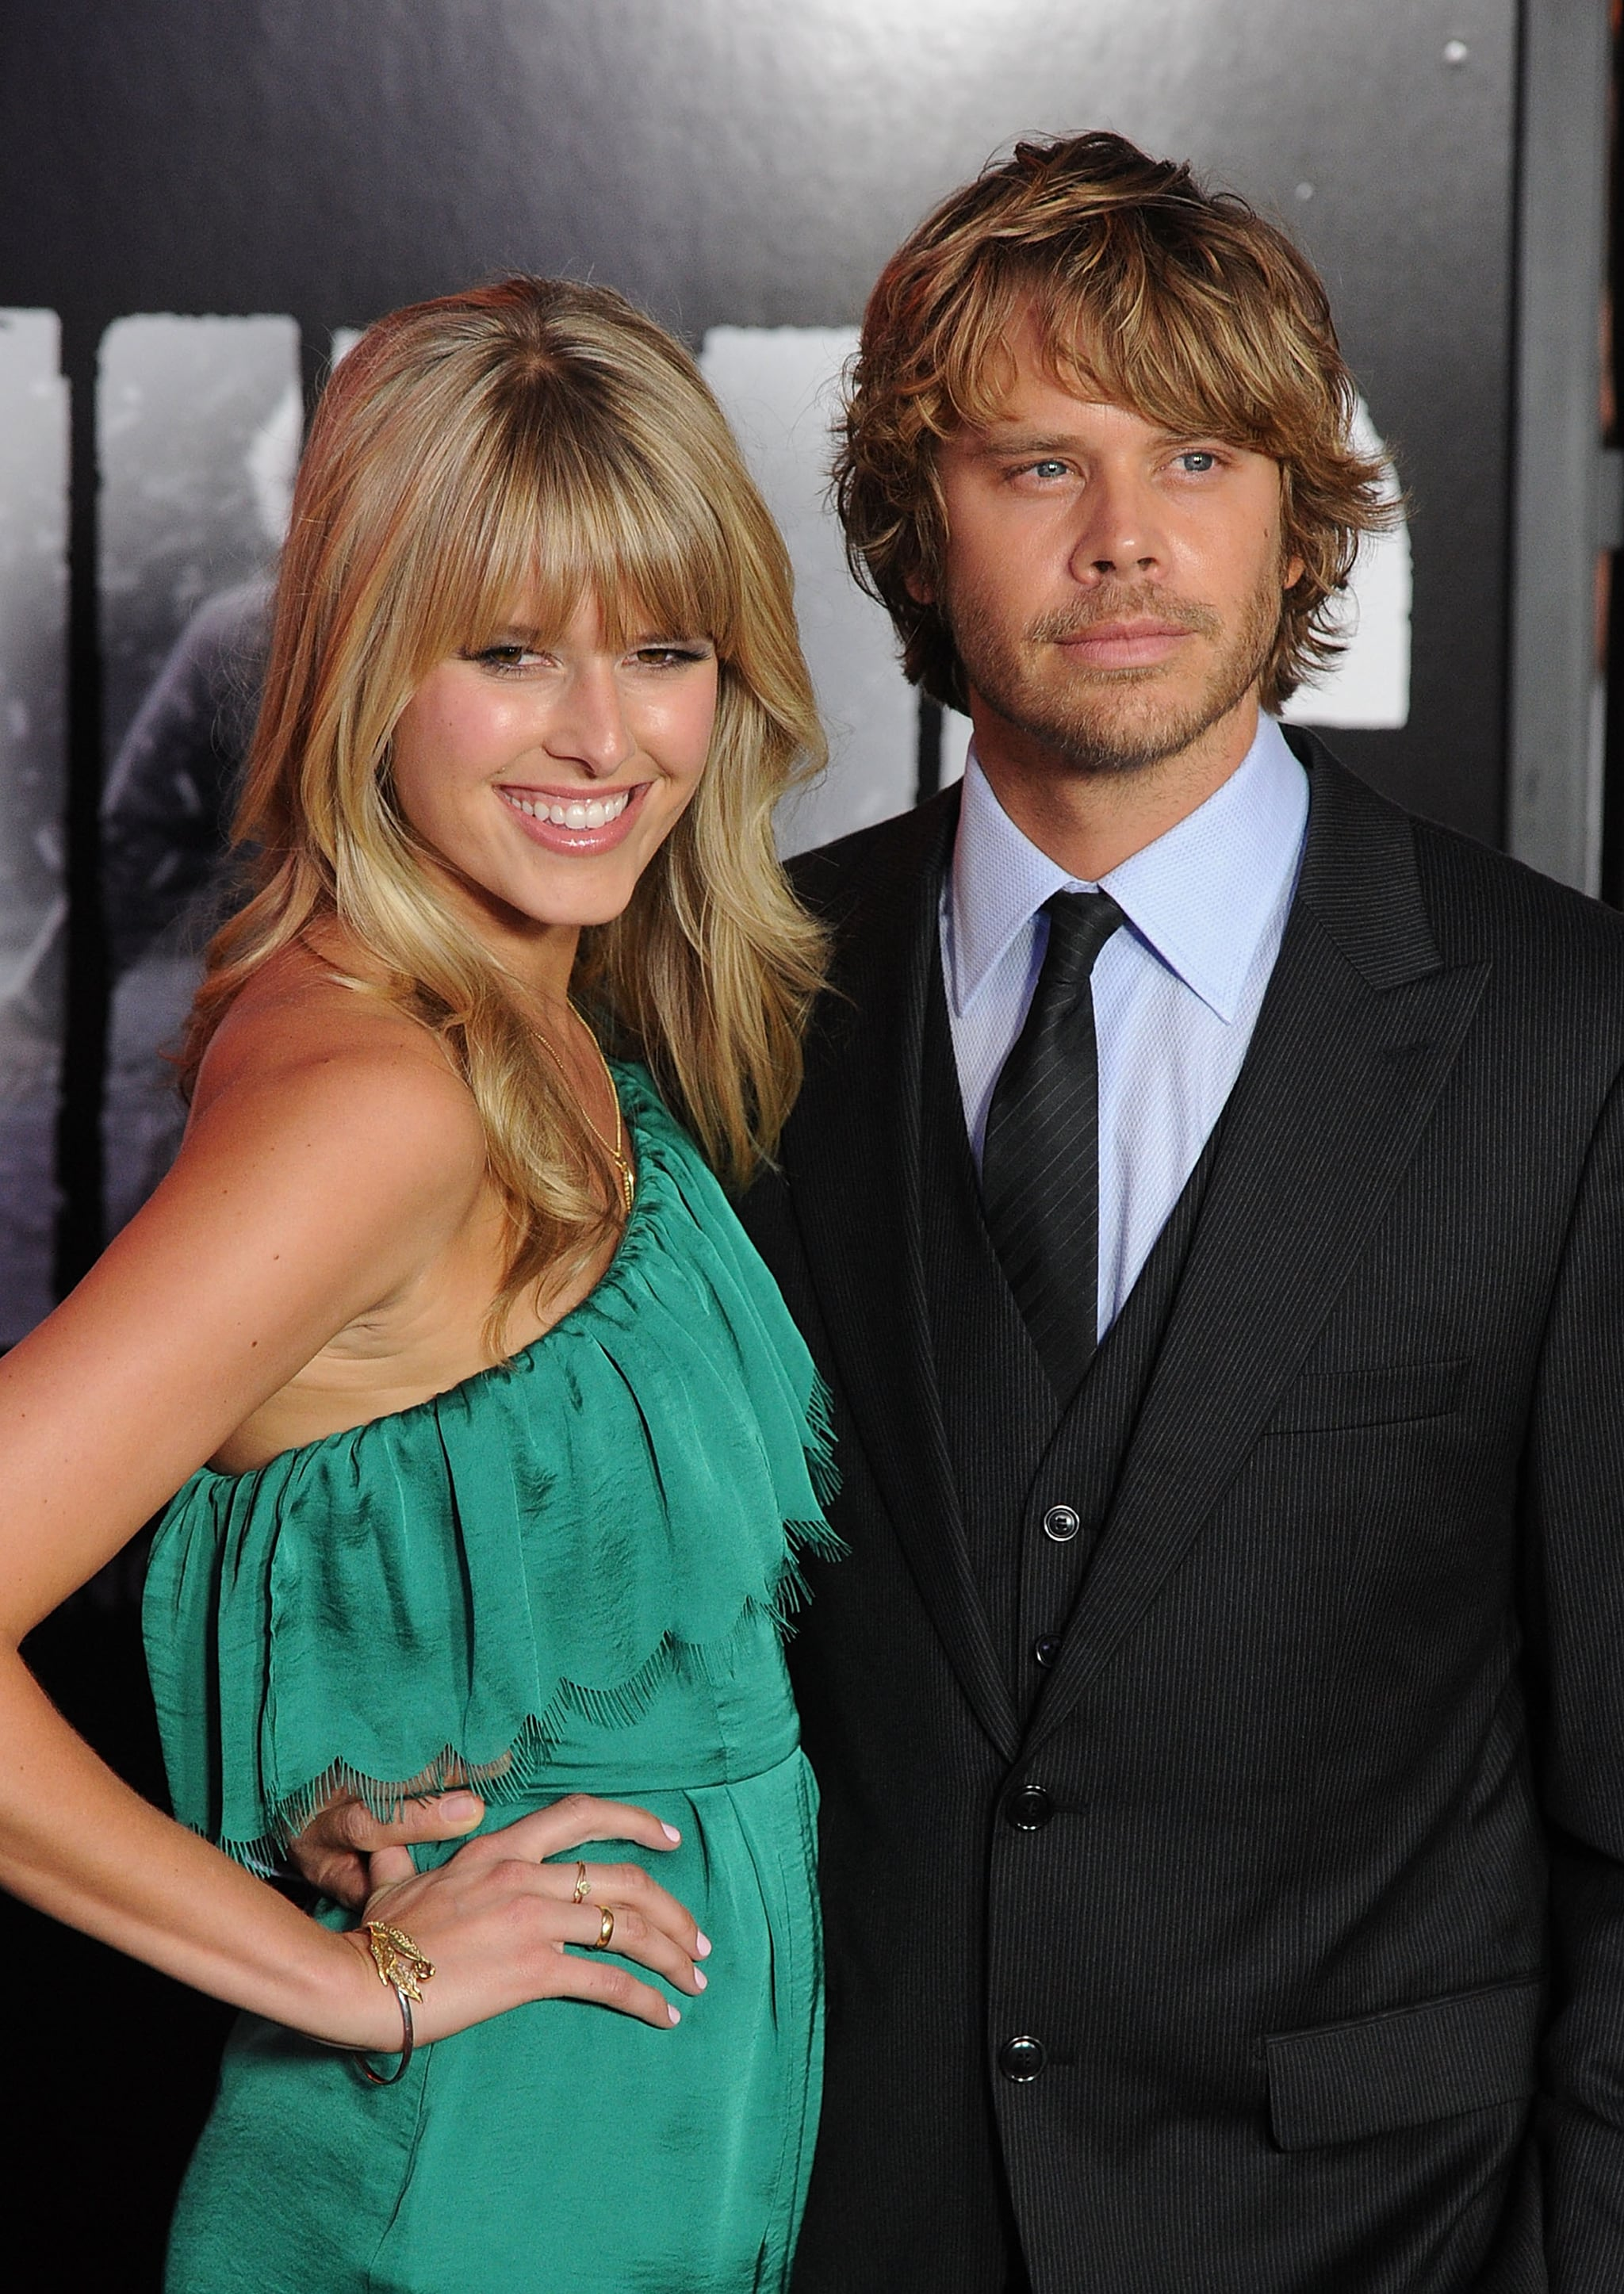 Sarah Wright and Eric Christian Olsen posed together at the LA premiere of The Thing.